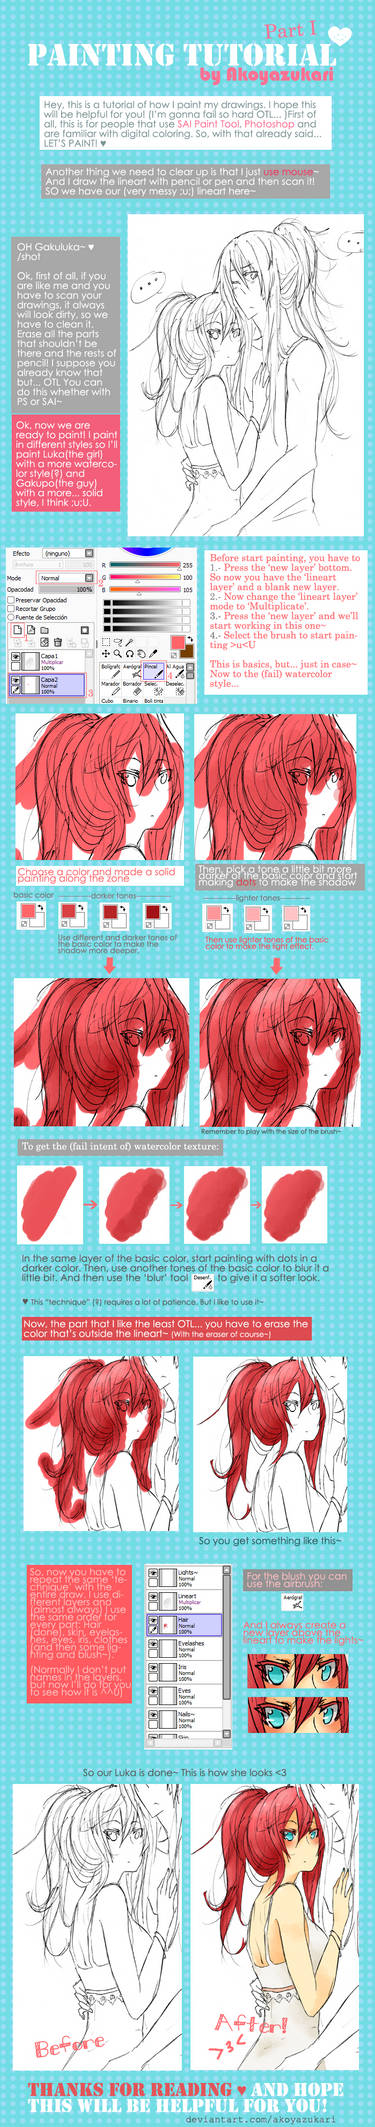 Painting Tutorial.Part I